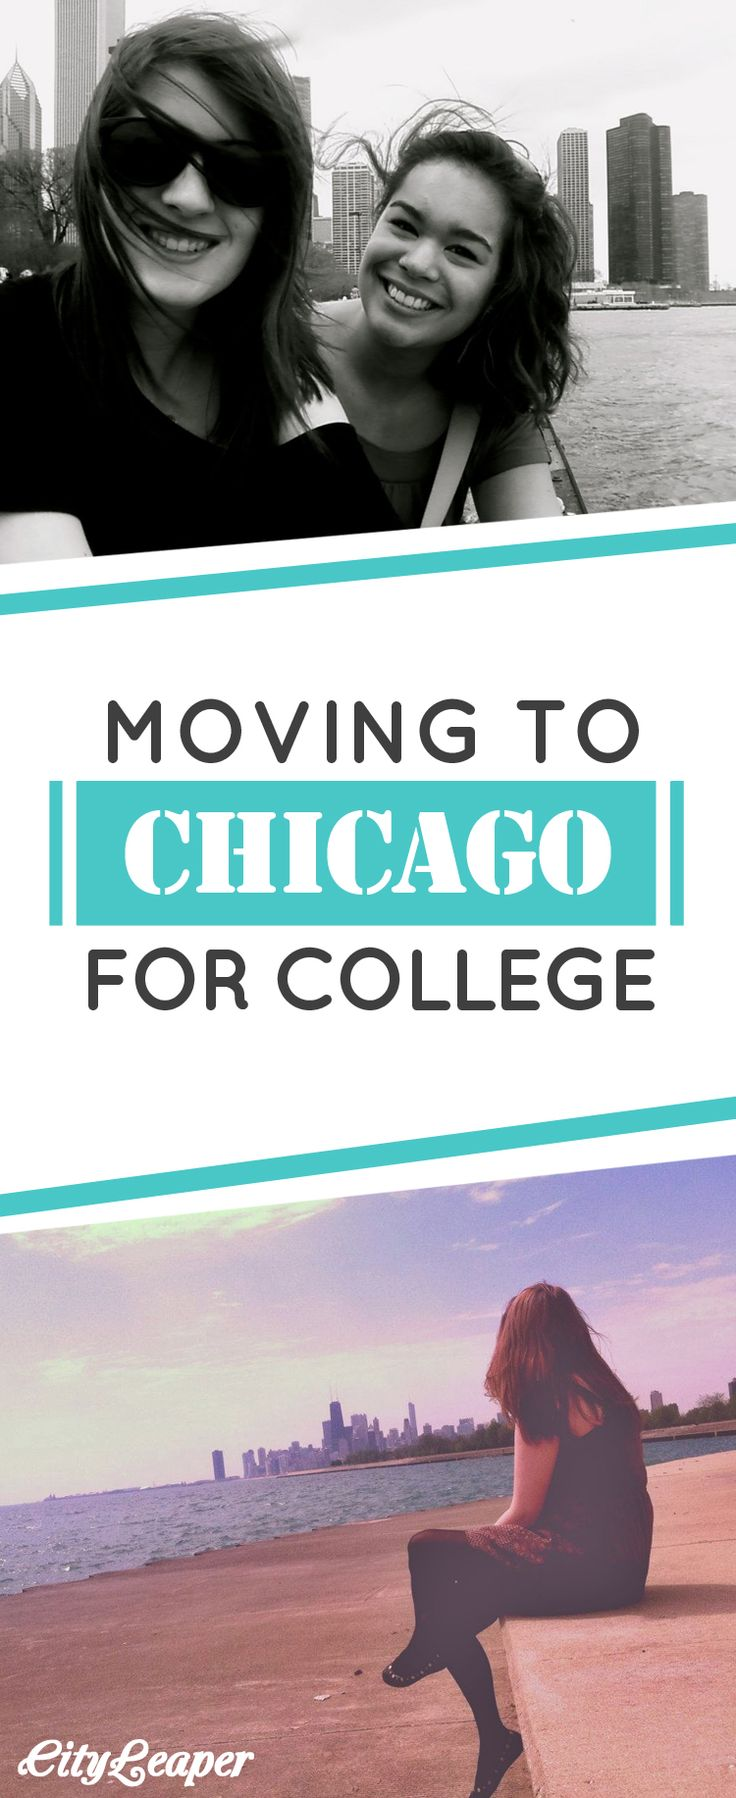 Shifting to Chicago for School